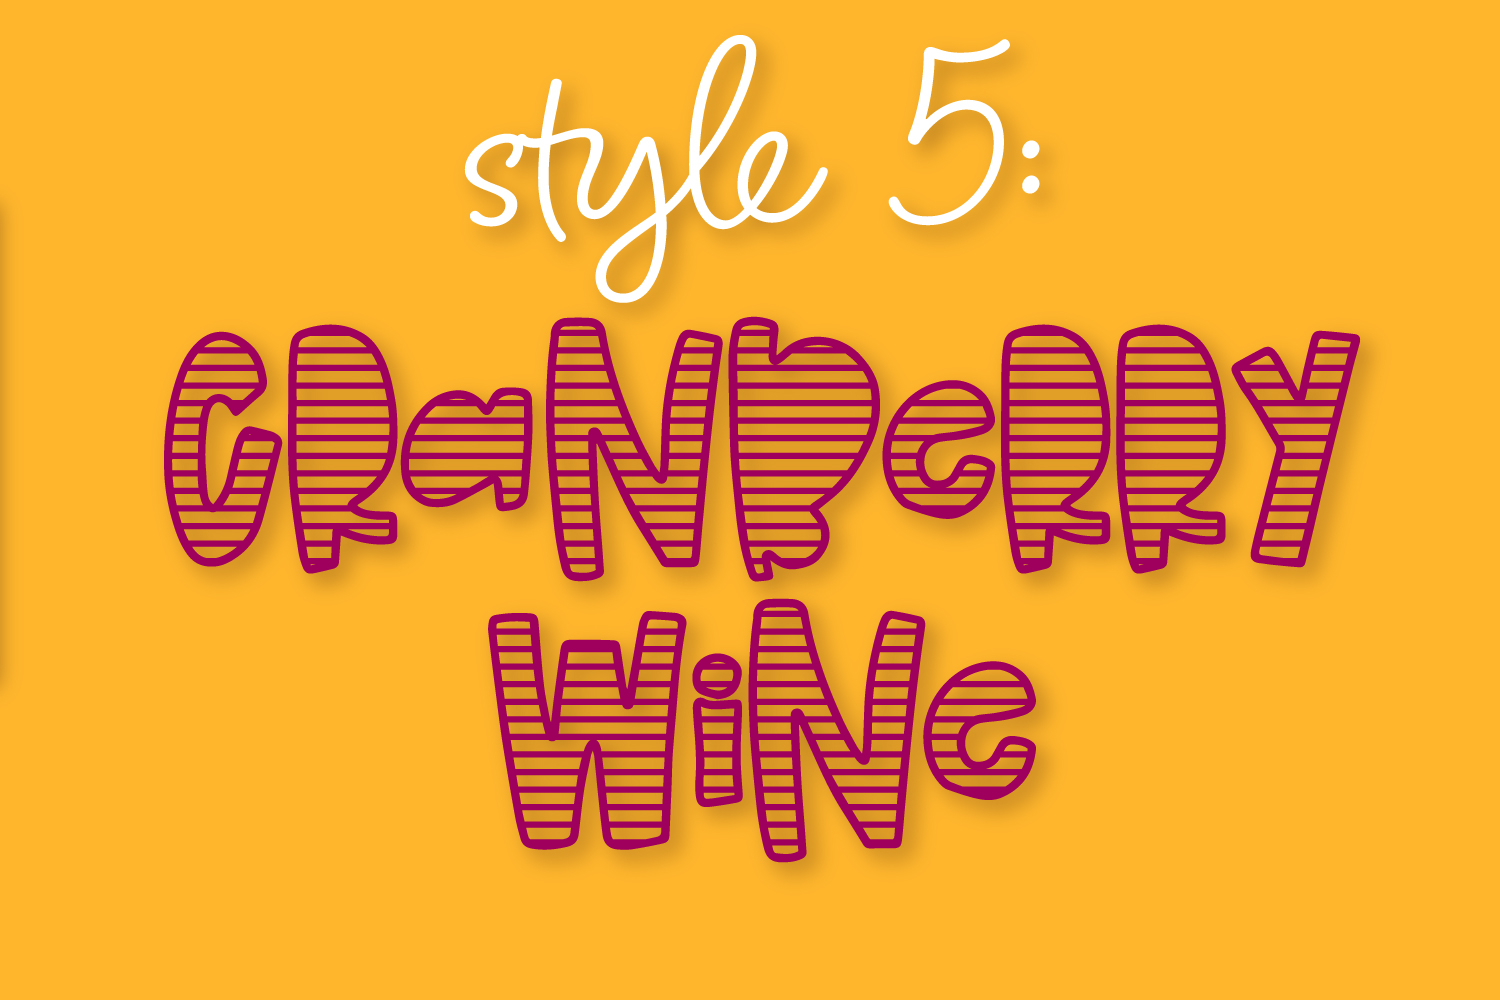 Cranberry Wine - A Striped Font Family of 6 New Fonts! example image 7